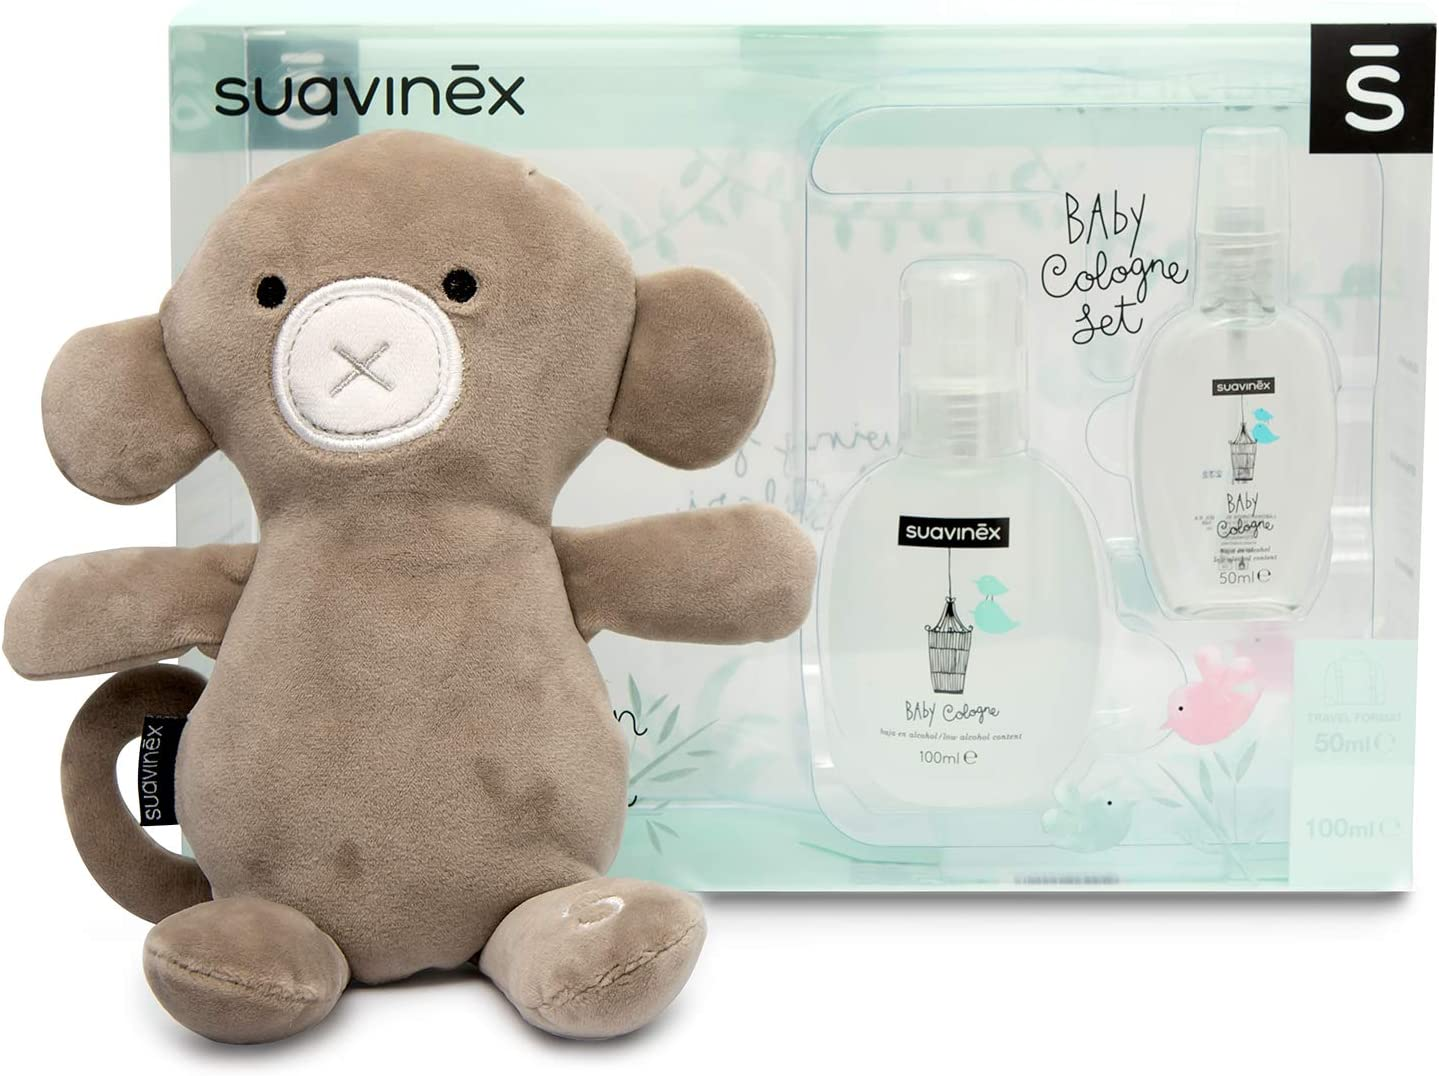 Suavinex, Set regalo recién nacido Baby Cologne 100ml + Peluche + Baby cologne 50ml formato viaje de regalo